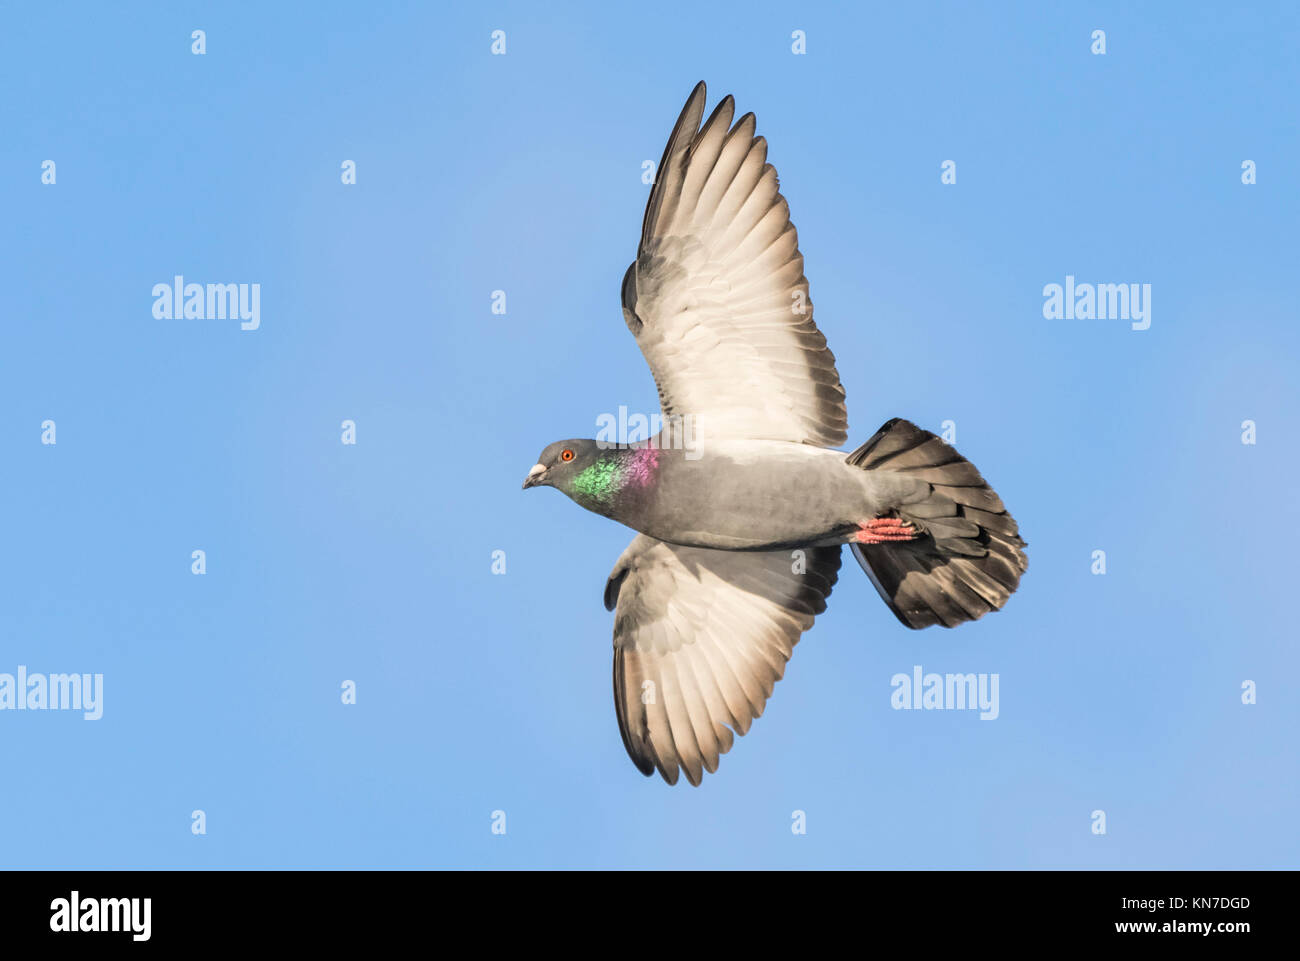 Feral Pigeon (Columba livia domestica) flying with wings outstretched in Winter against blue sky in the UK. - Stock Image